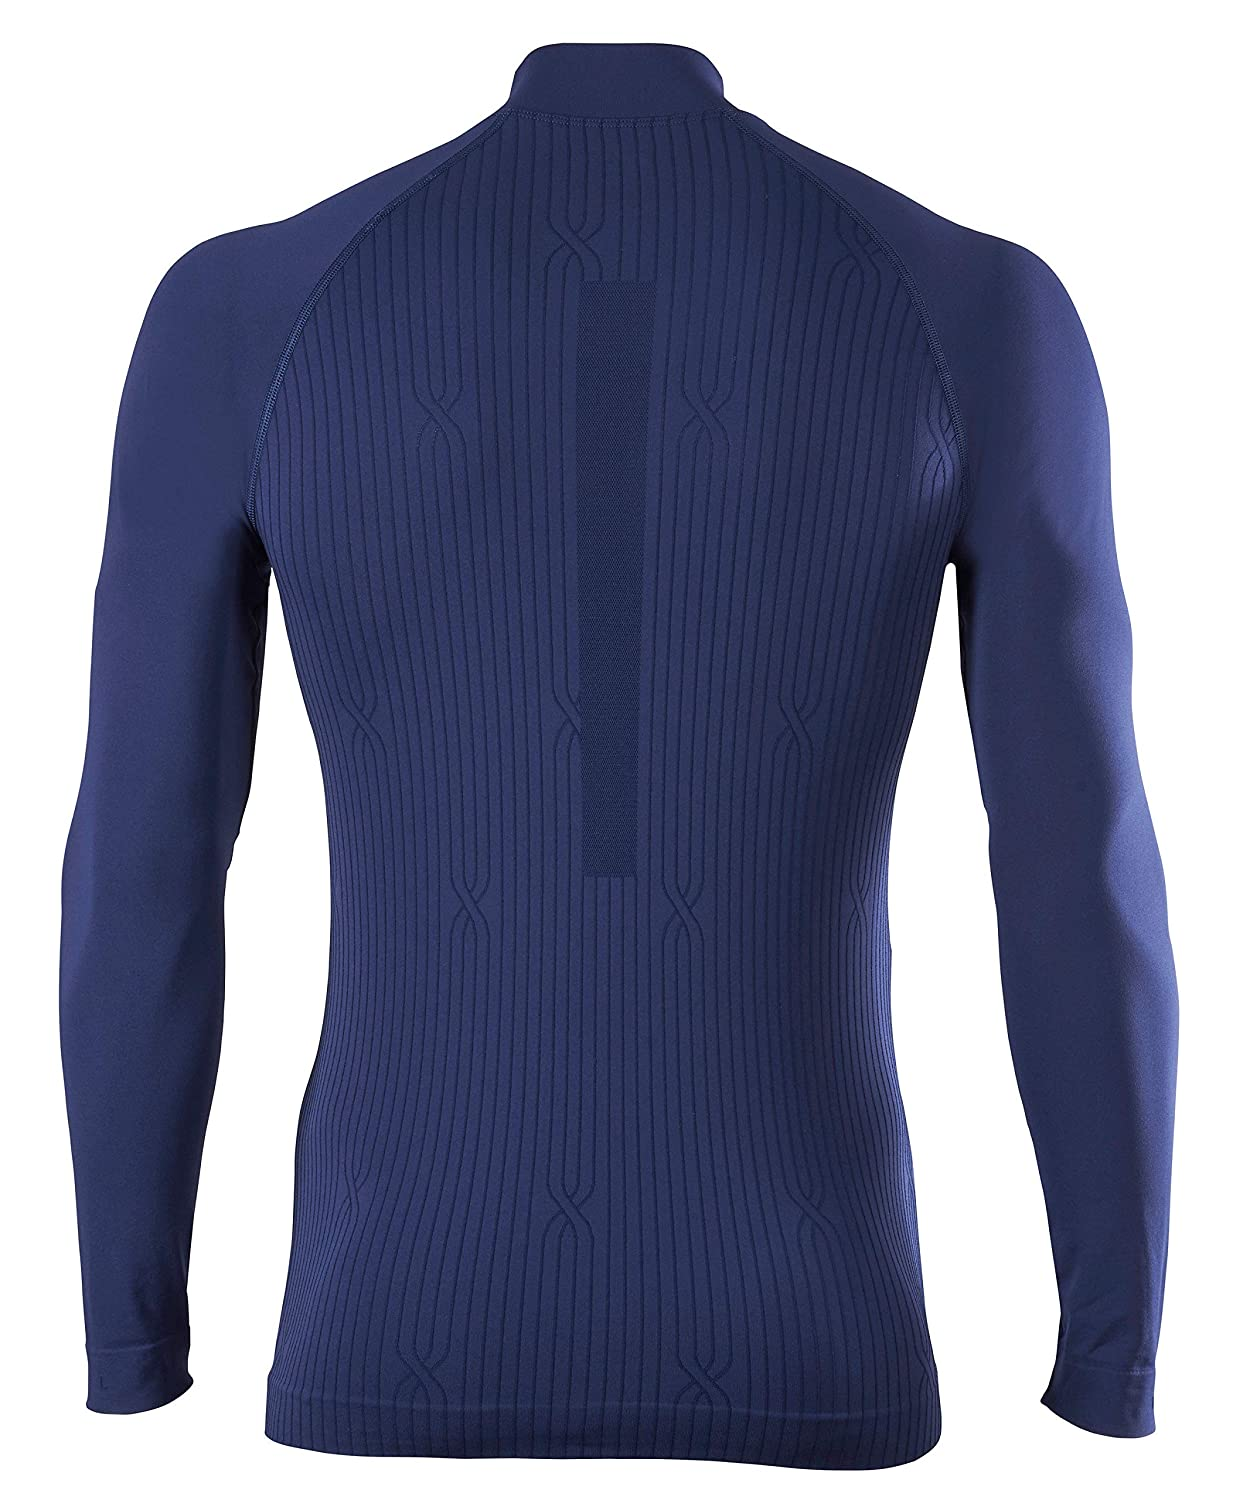 polyamide mix fast drying multiple colours FALKE ESS Men Warm turtle neck Sizes S-XXL Sweat wicking protection in mild to cold temperatures